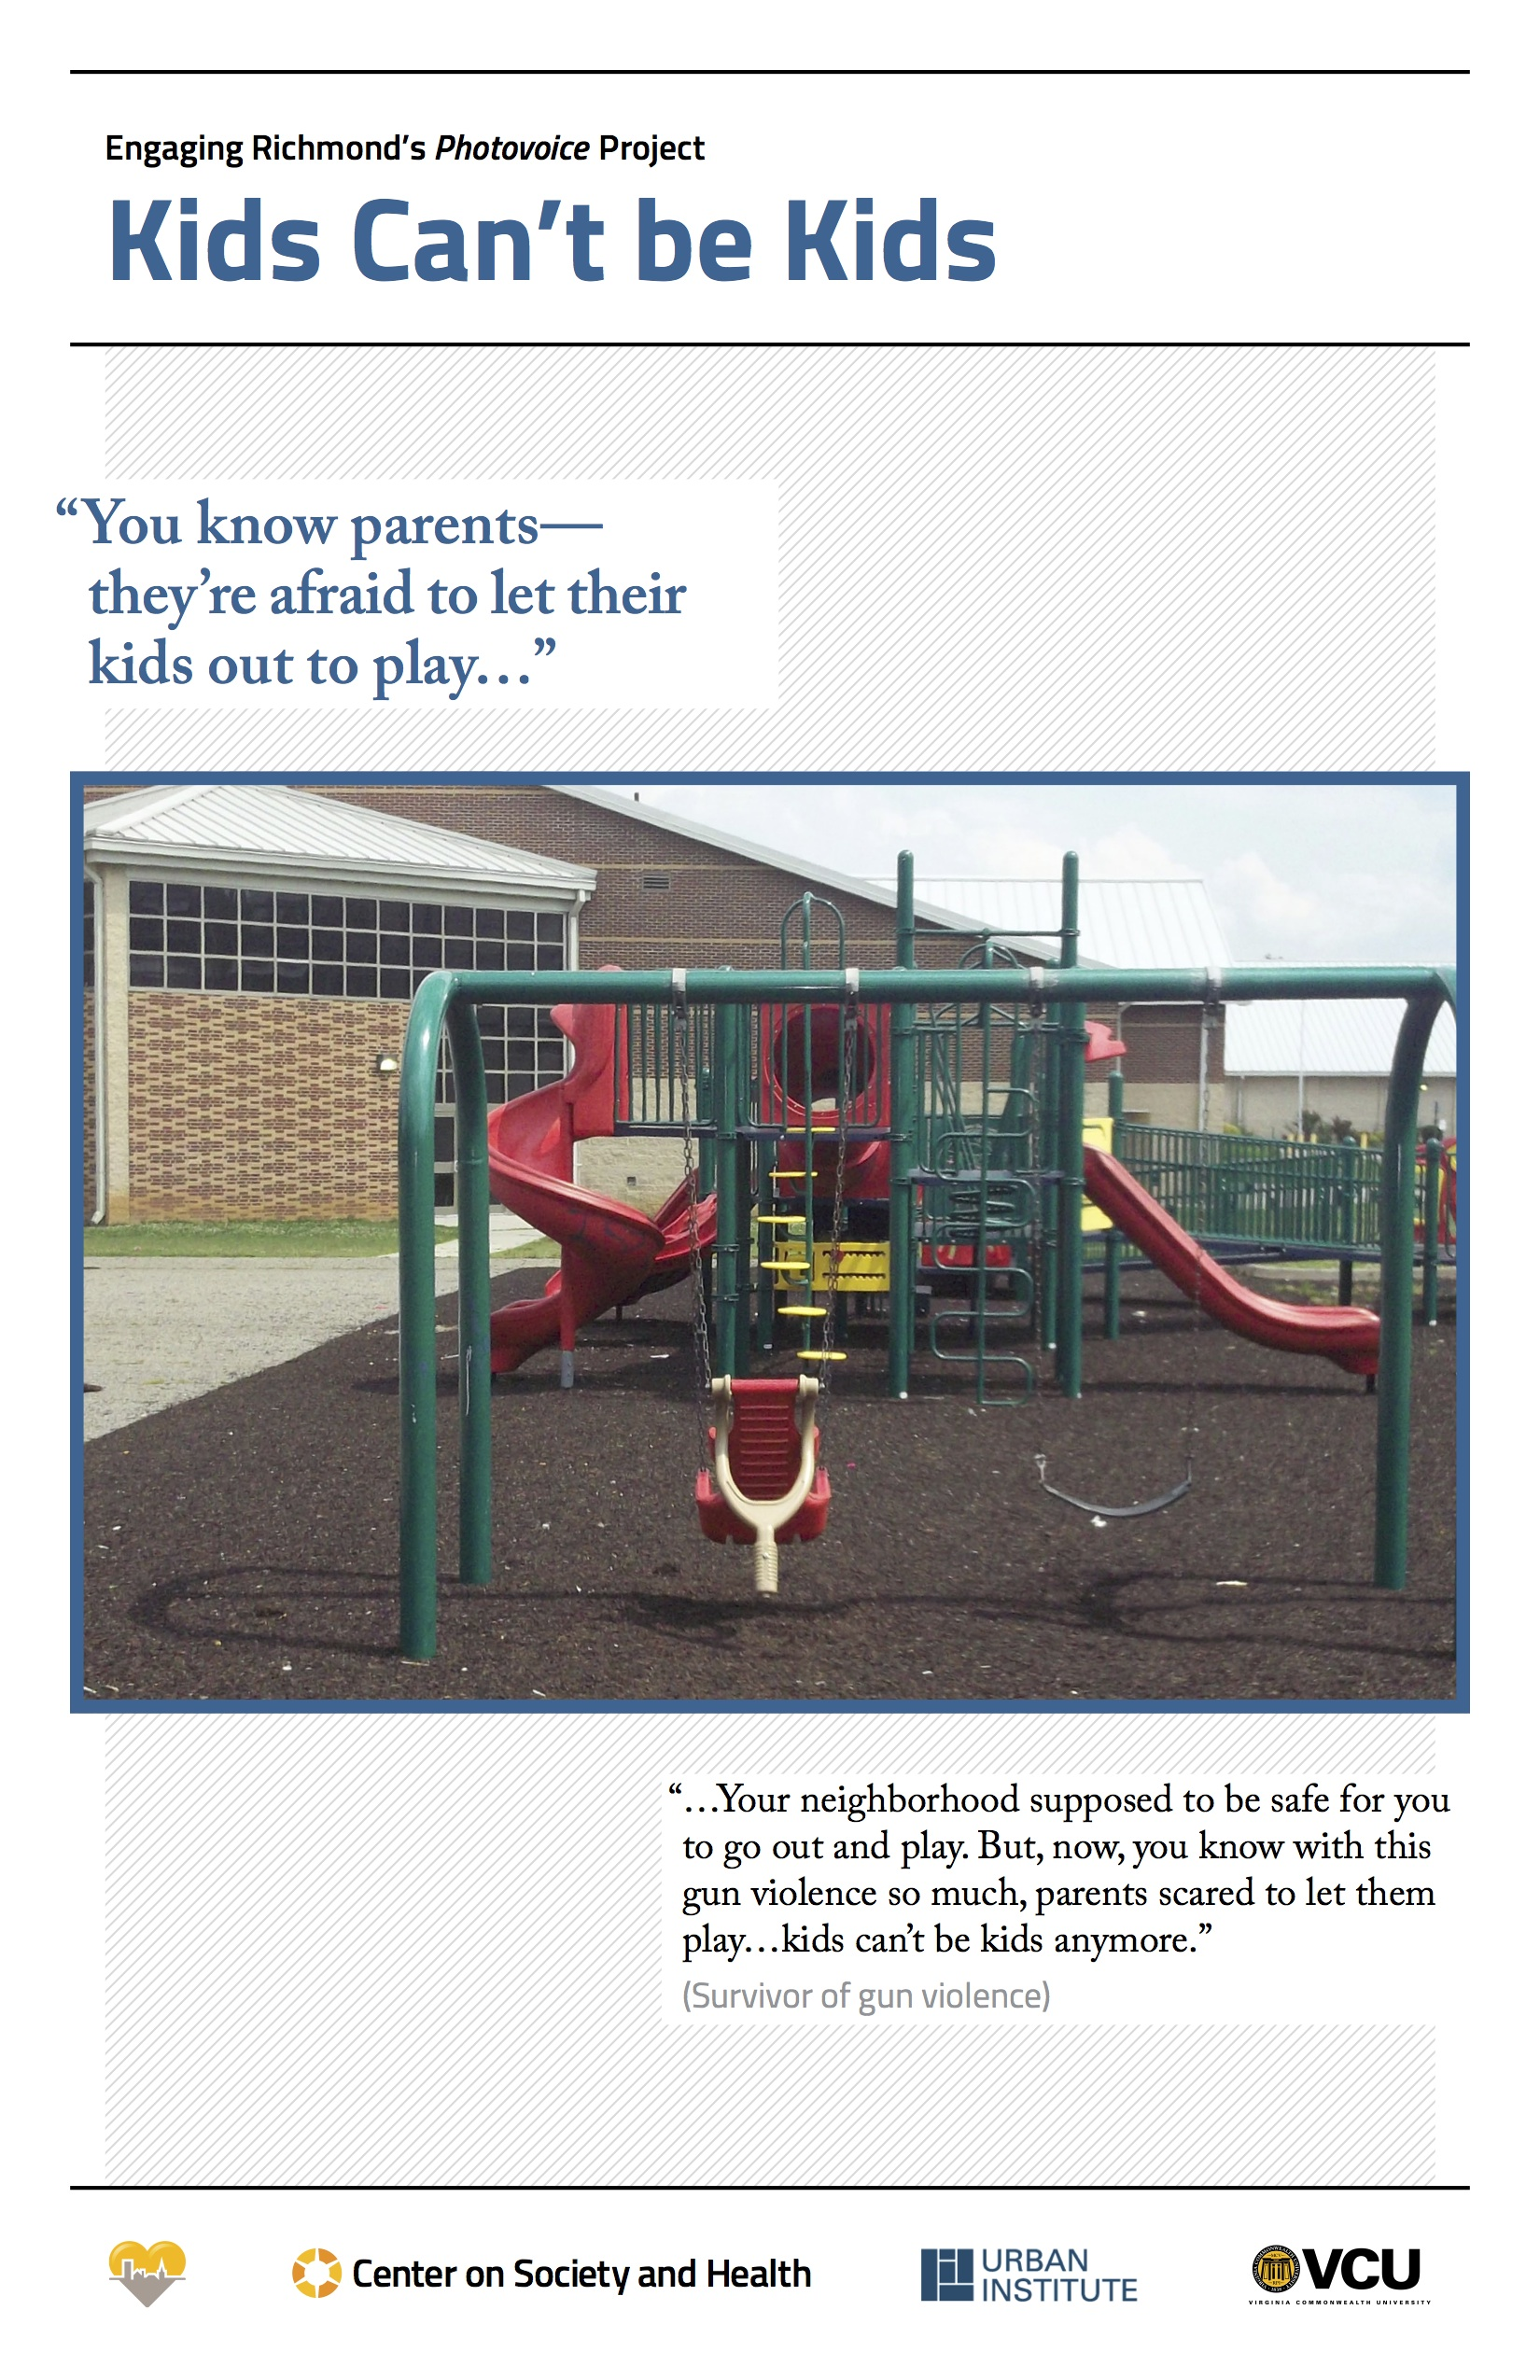 Slide 1: Kids Can't be Kids